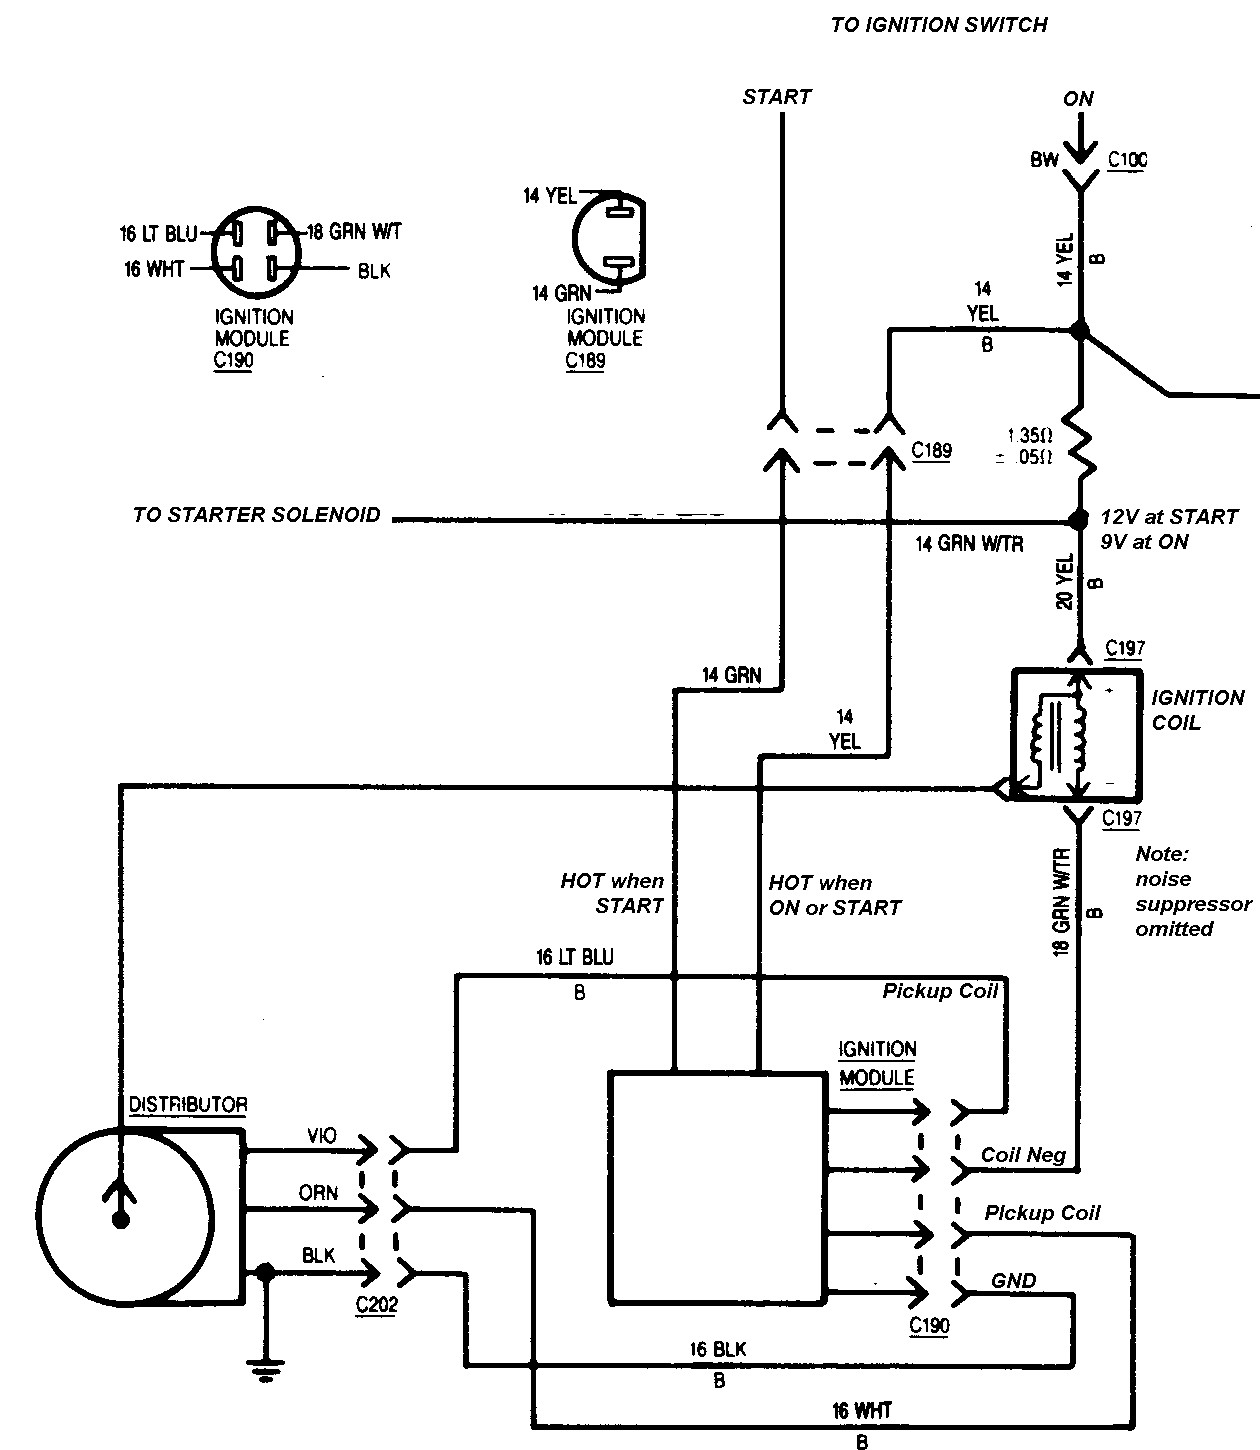 hight resolution of gm ignition module wiring diagram example electrical wiring diagram u2022 rh olkha co gm ignition module